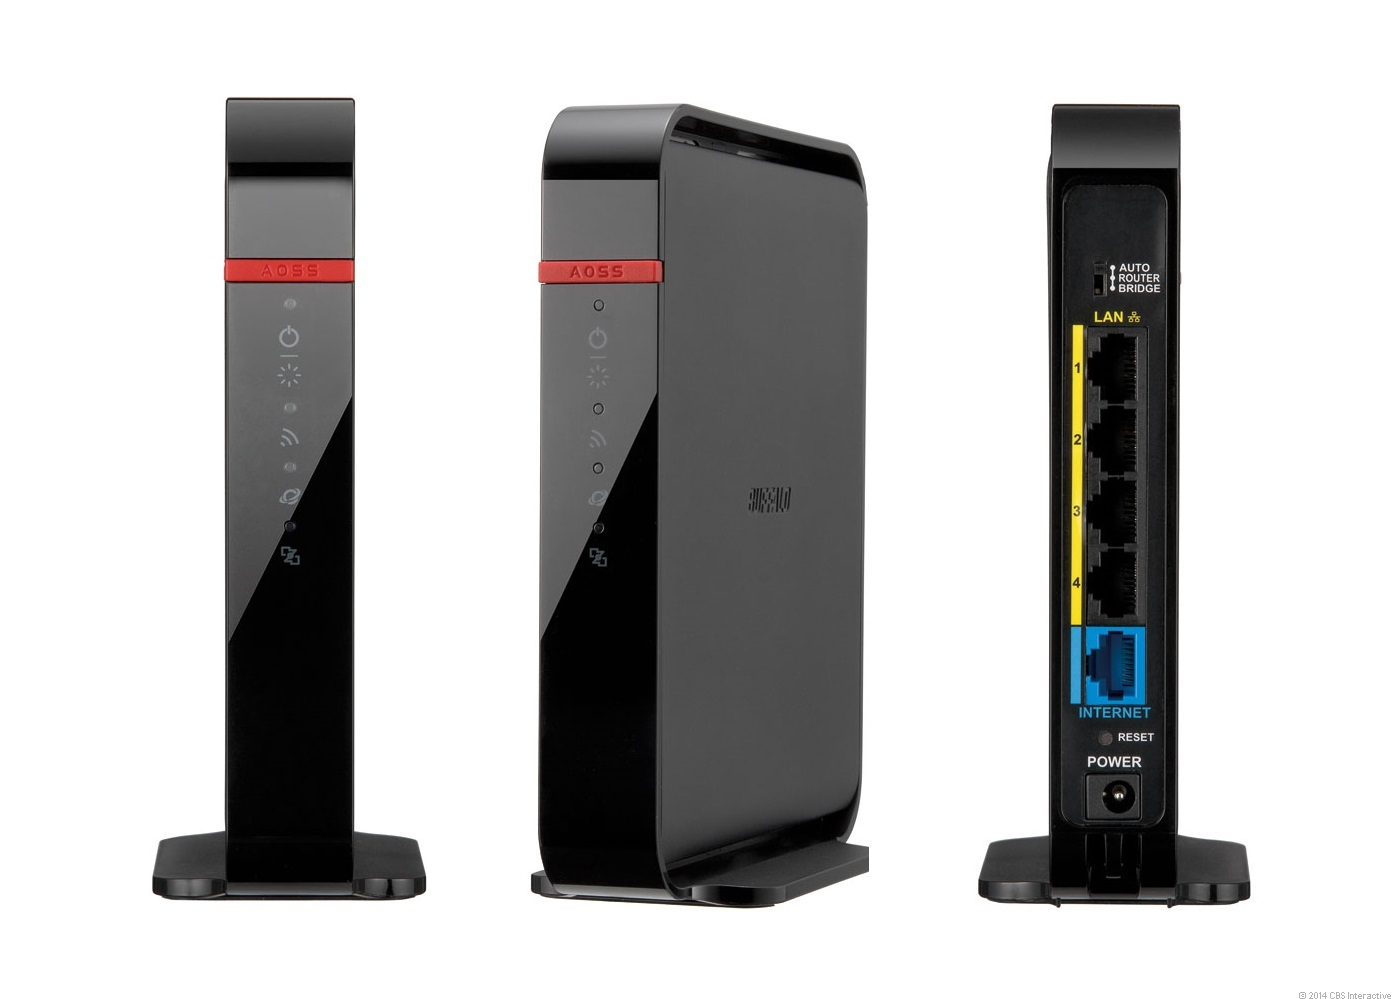 The Buffalo AirStation AC 1200 Dual Band Wireless Router (model WHR-1166D).